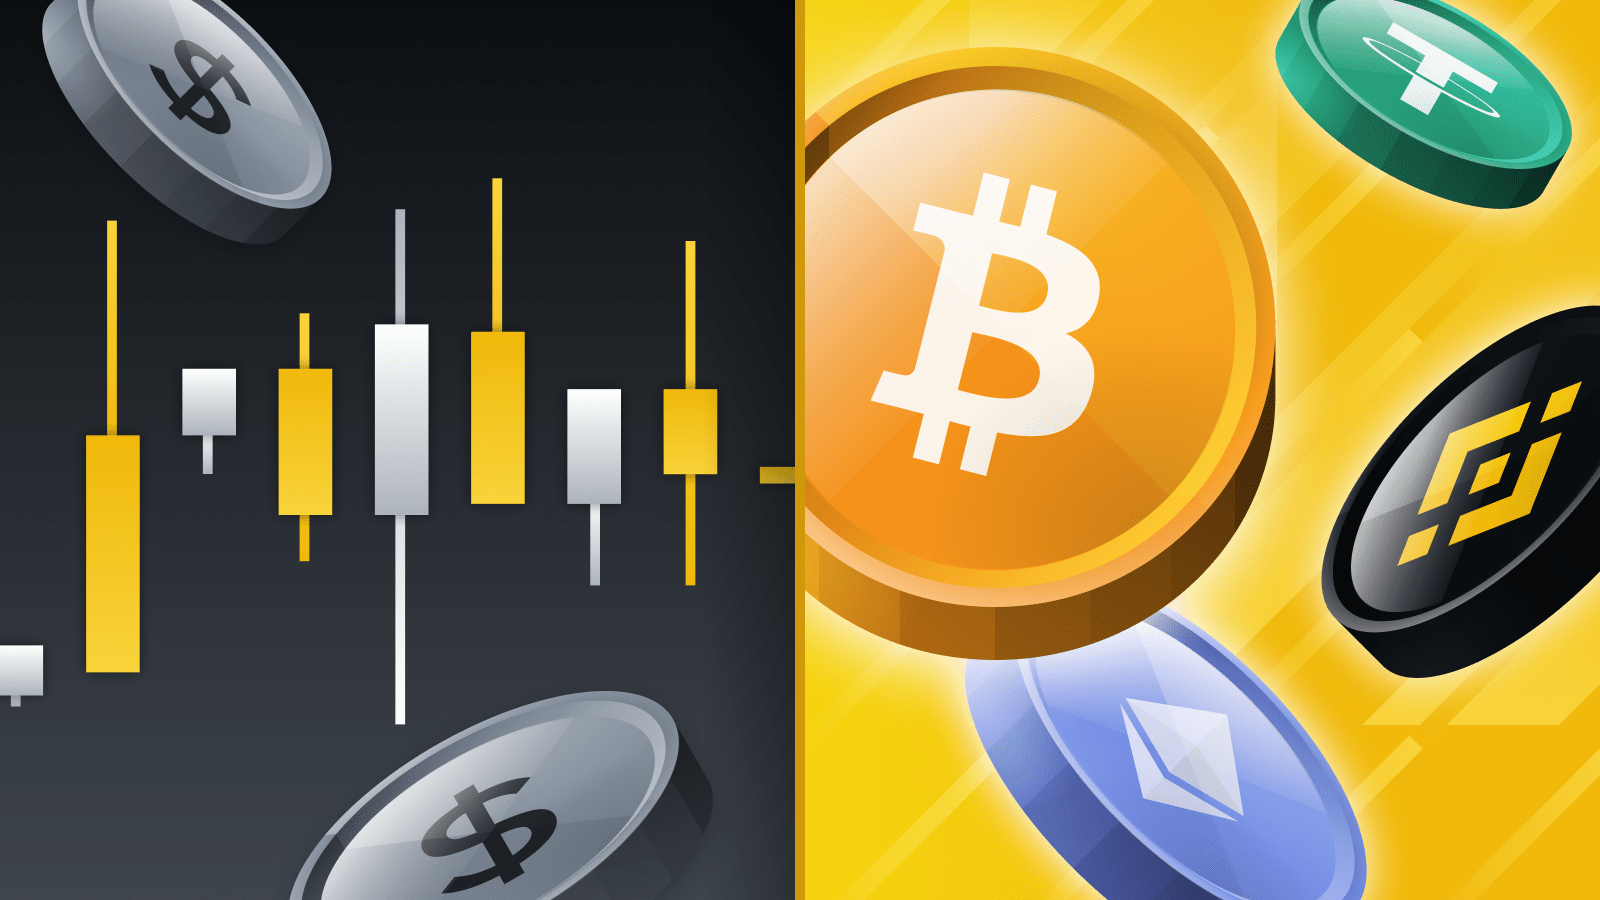 Traditional Futures vs. Crypto Futures - What Are The Similarities and Differences? Cryptocurrency Trading Signals, Strategies & Templates | DexStrats